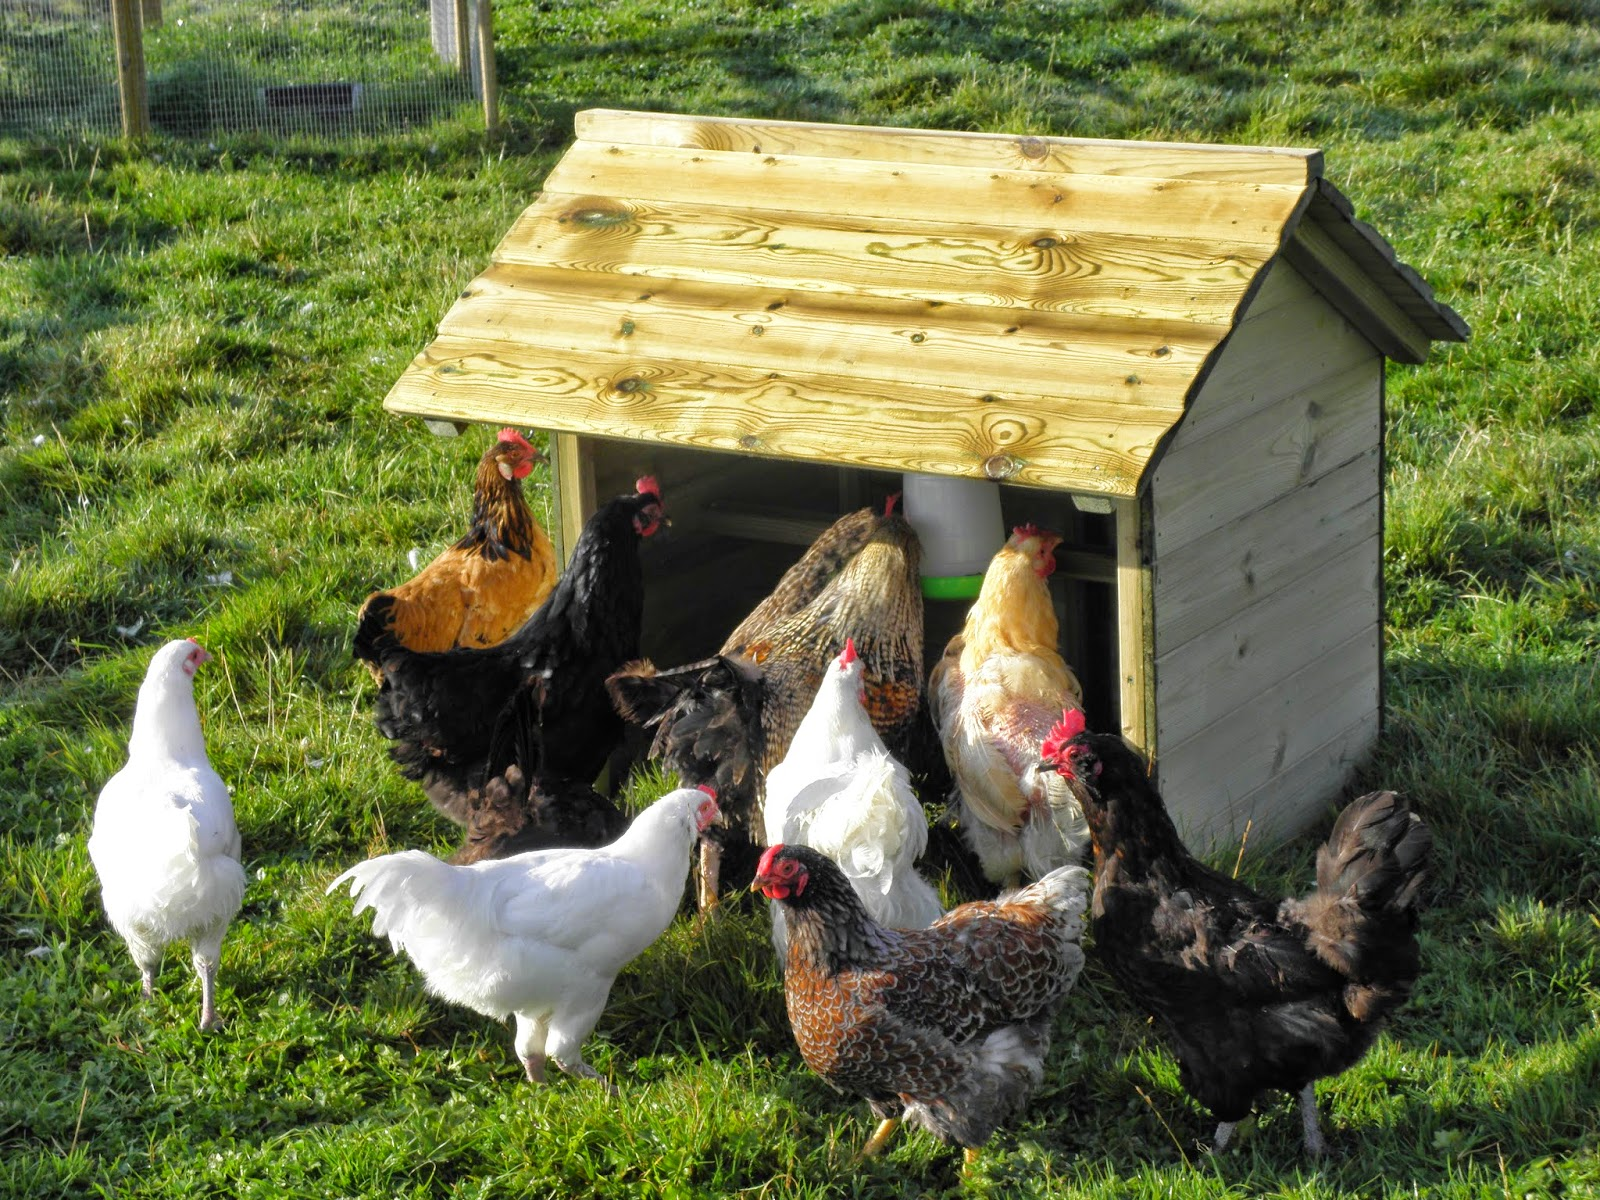 Shelter for Poultry from the Rain